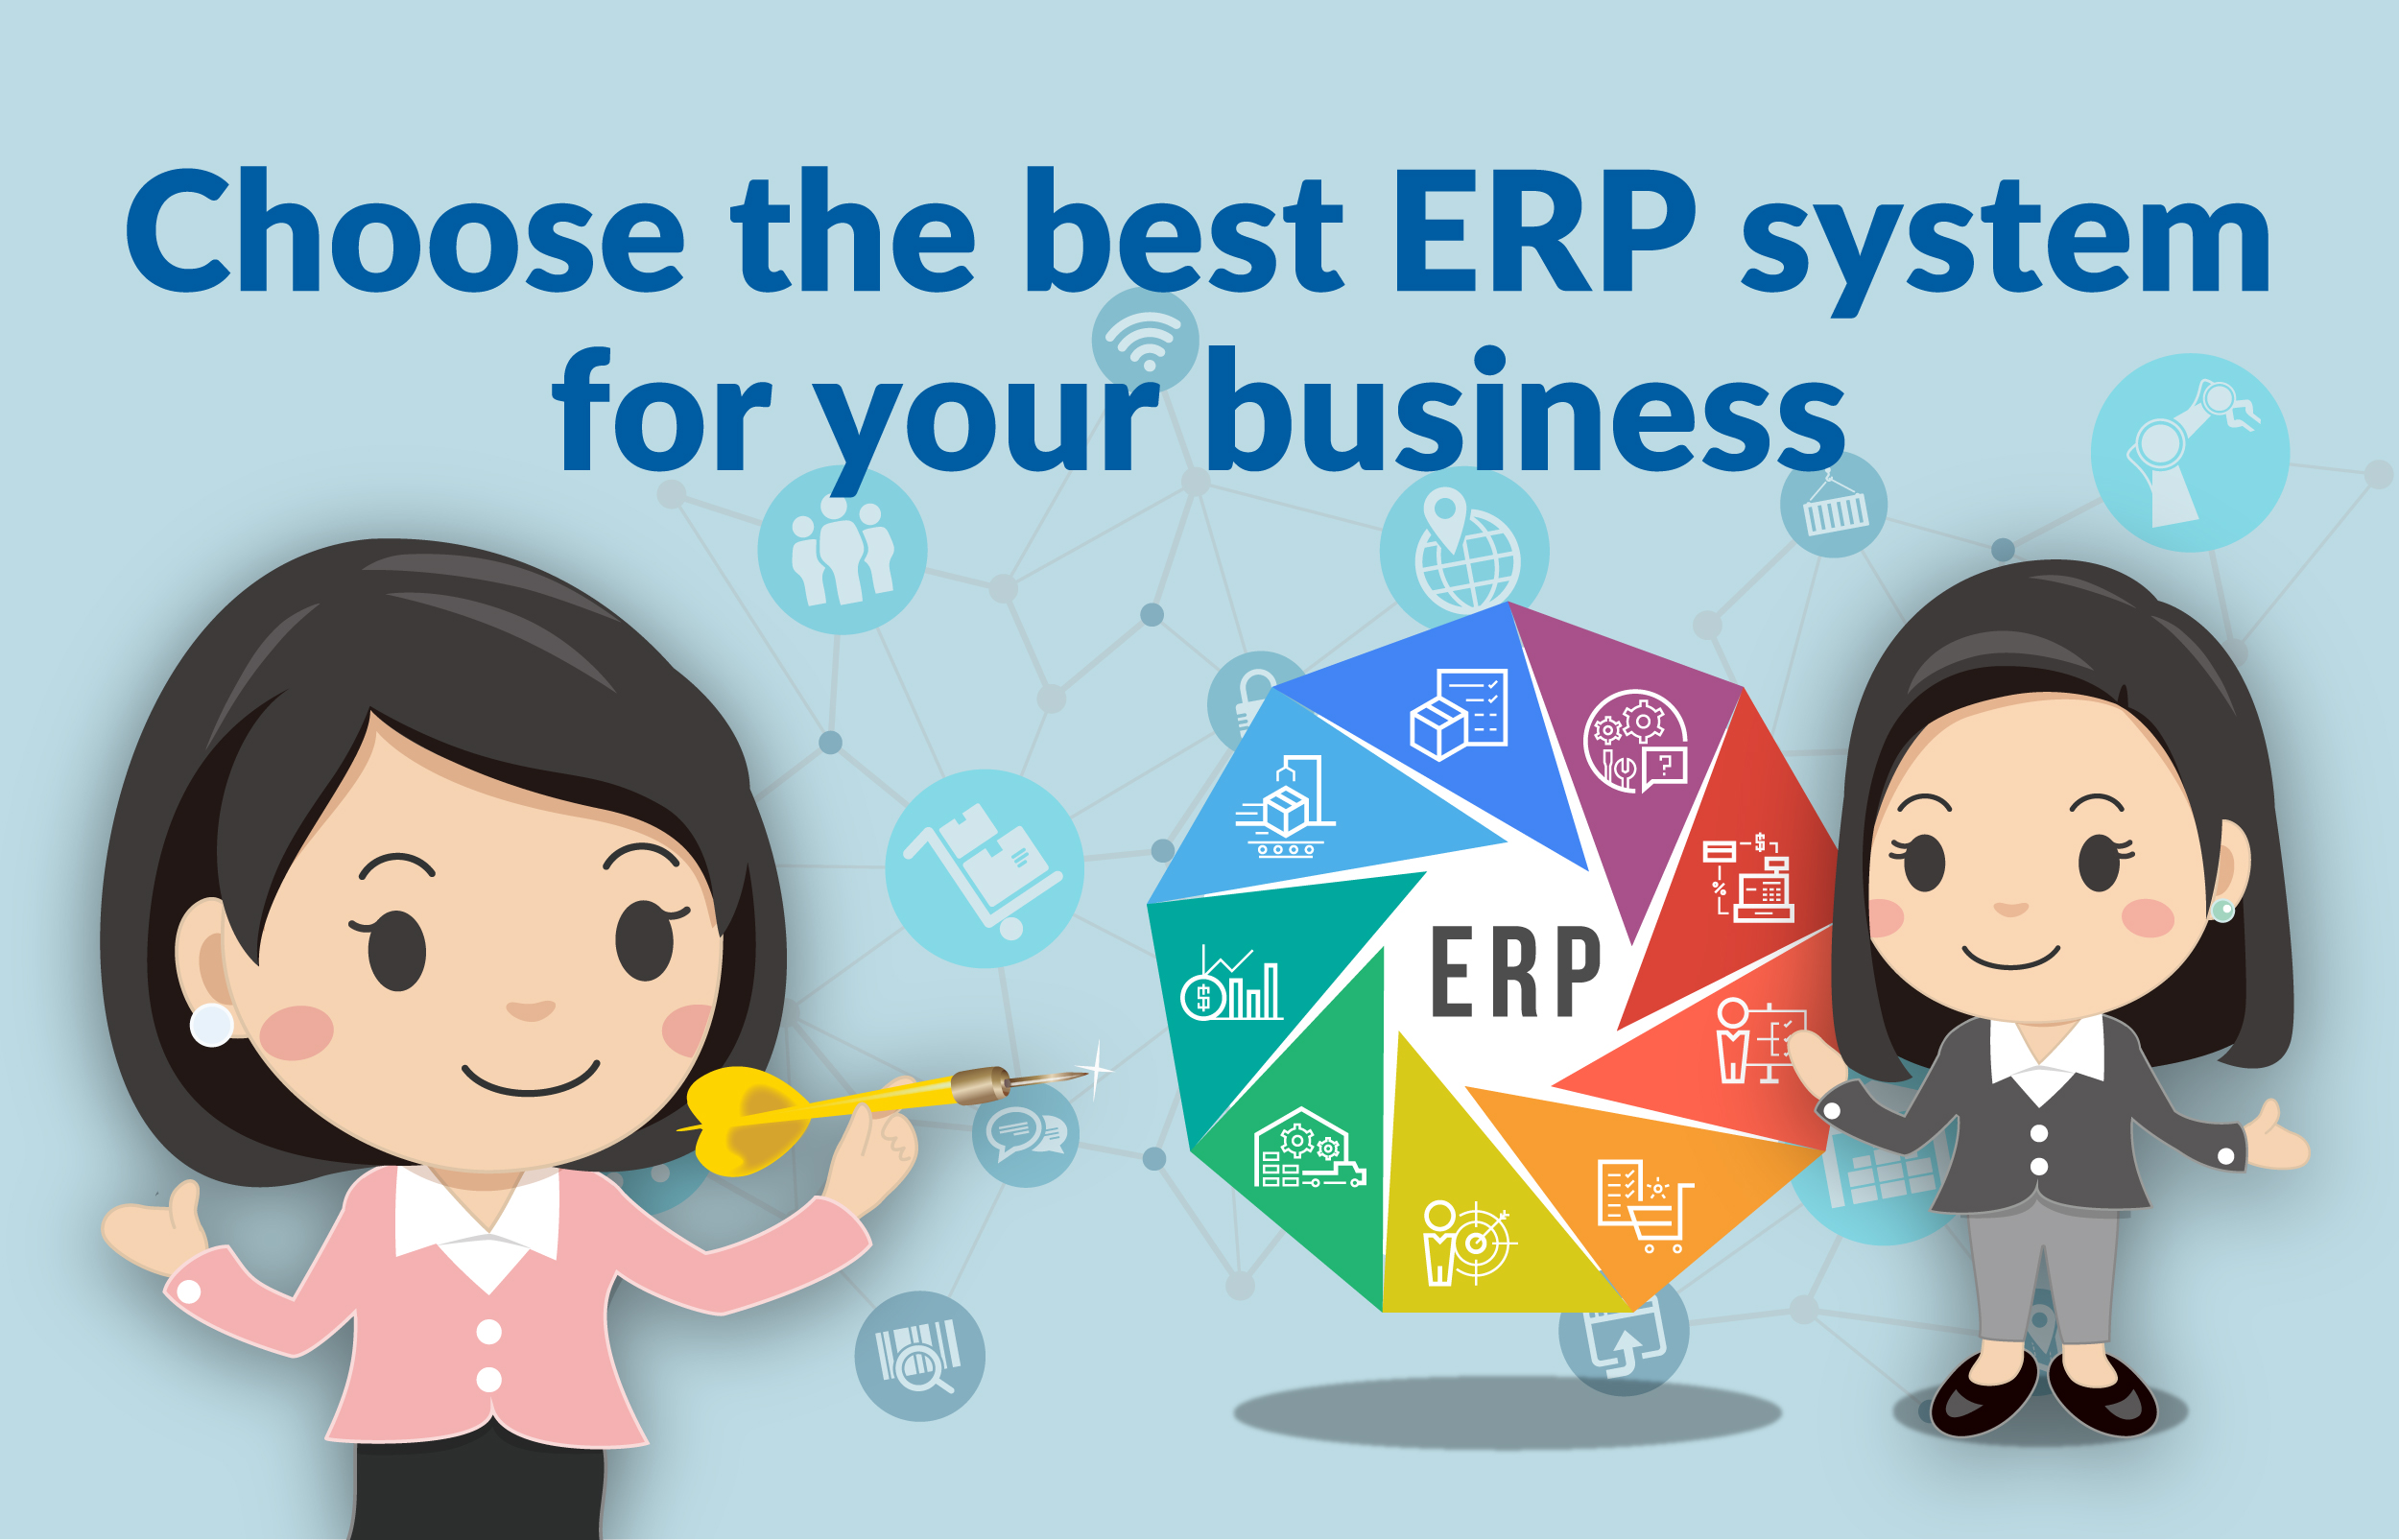 Choose the best ERP system for your business